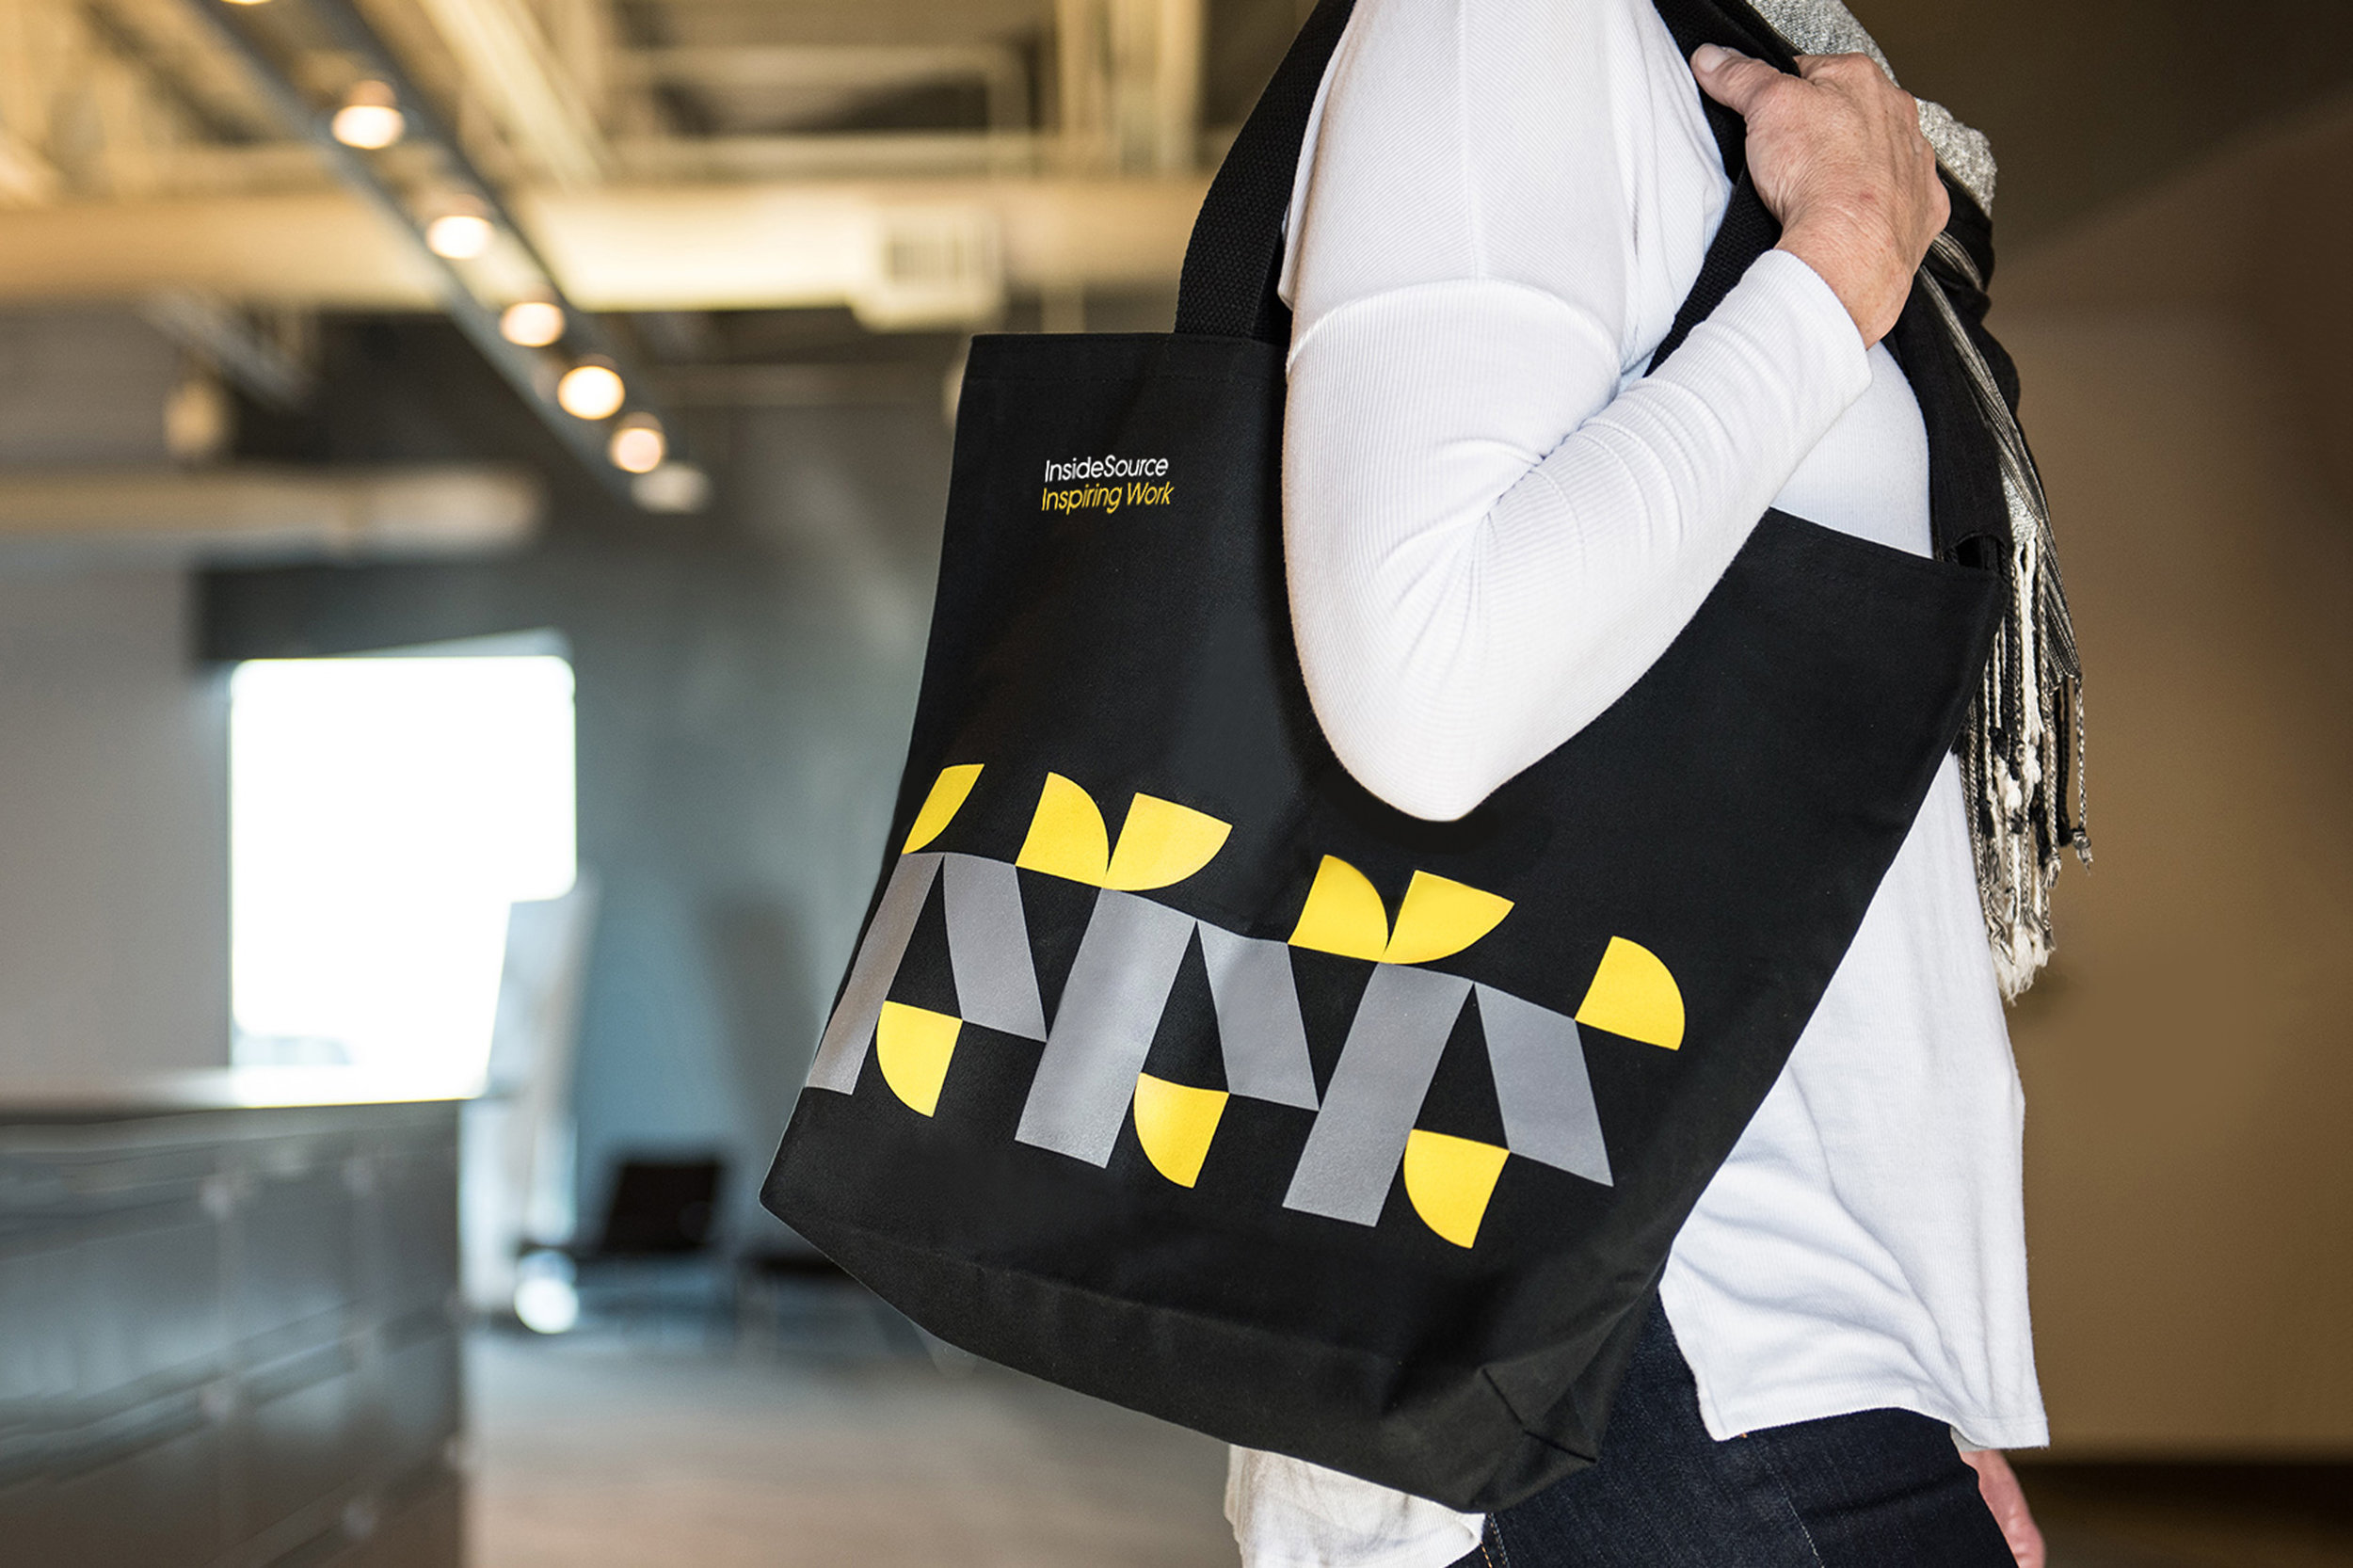 InsideSource_ToteBag.jpg